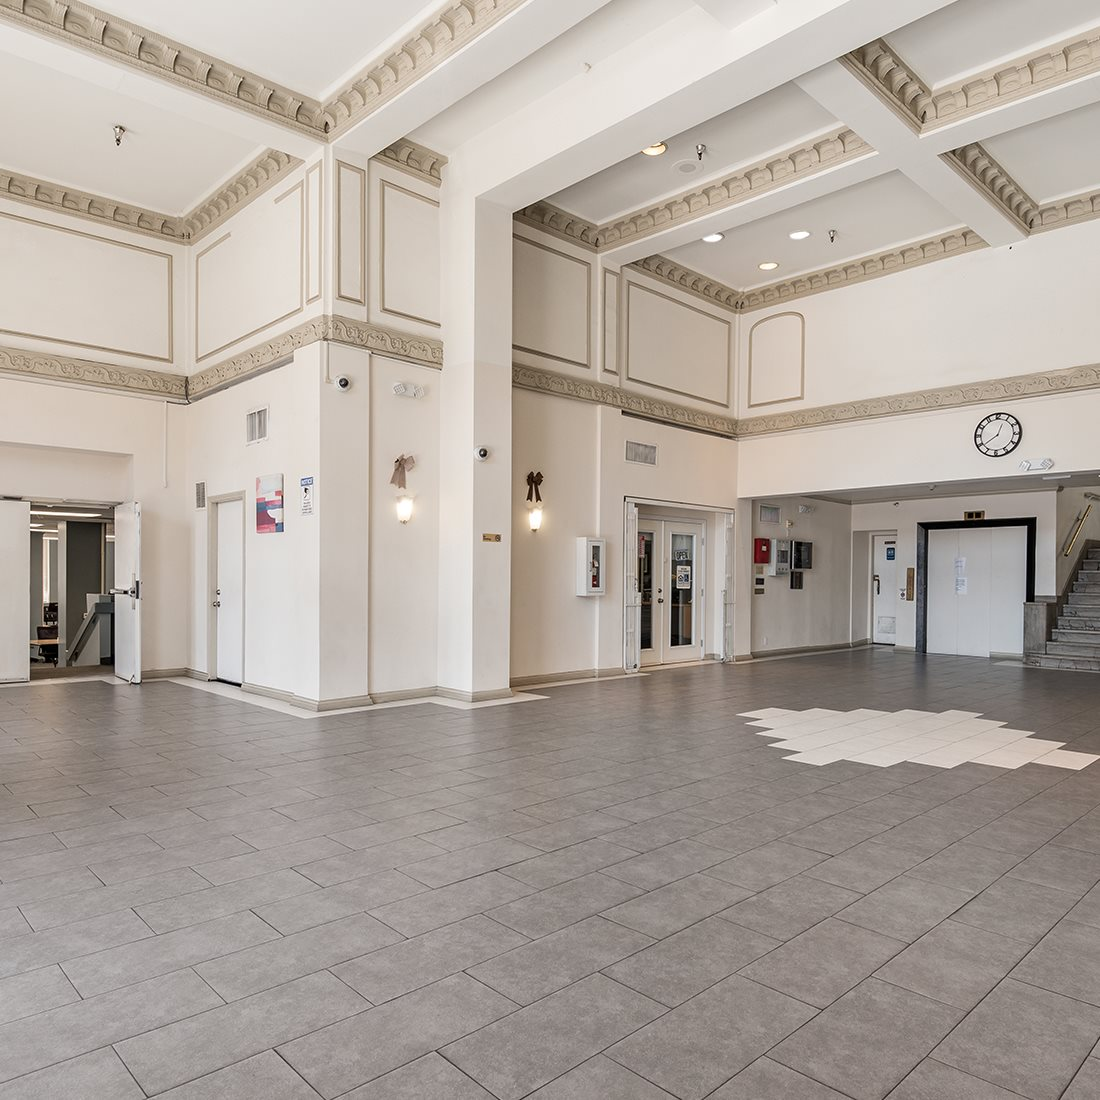 Spacious lobby area with an elevator and a staircase. This area has high ceilings, and security cameras.